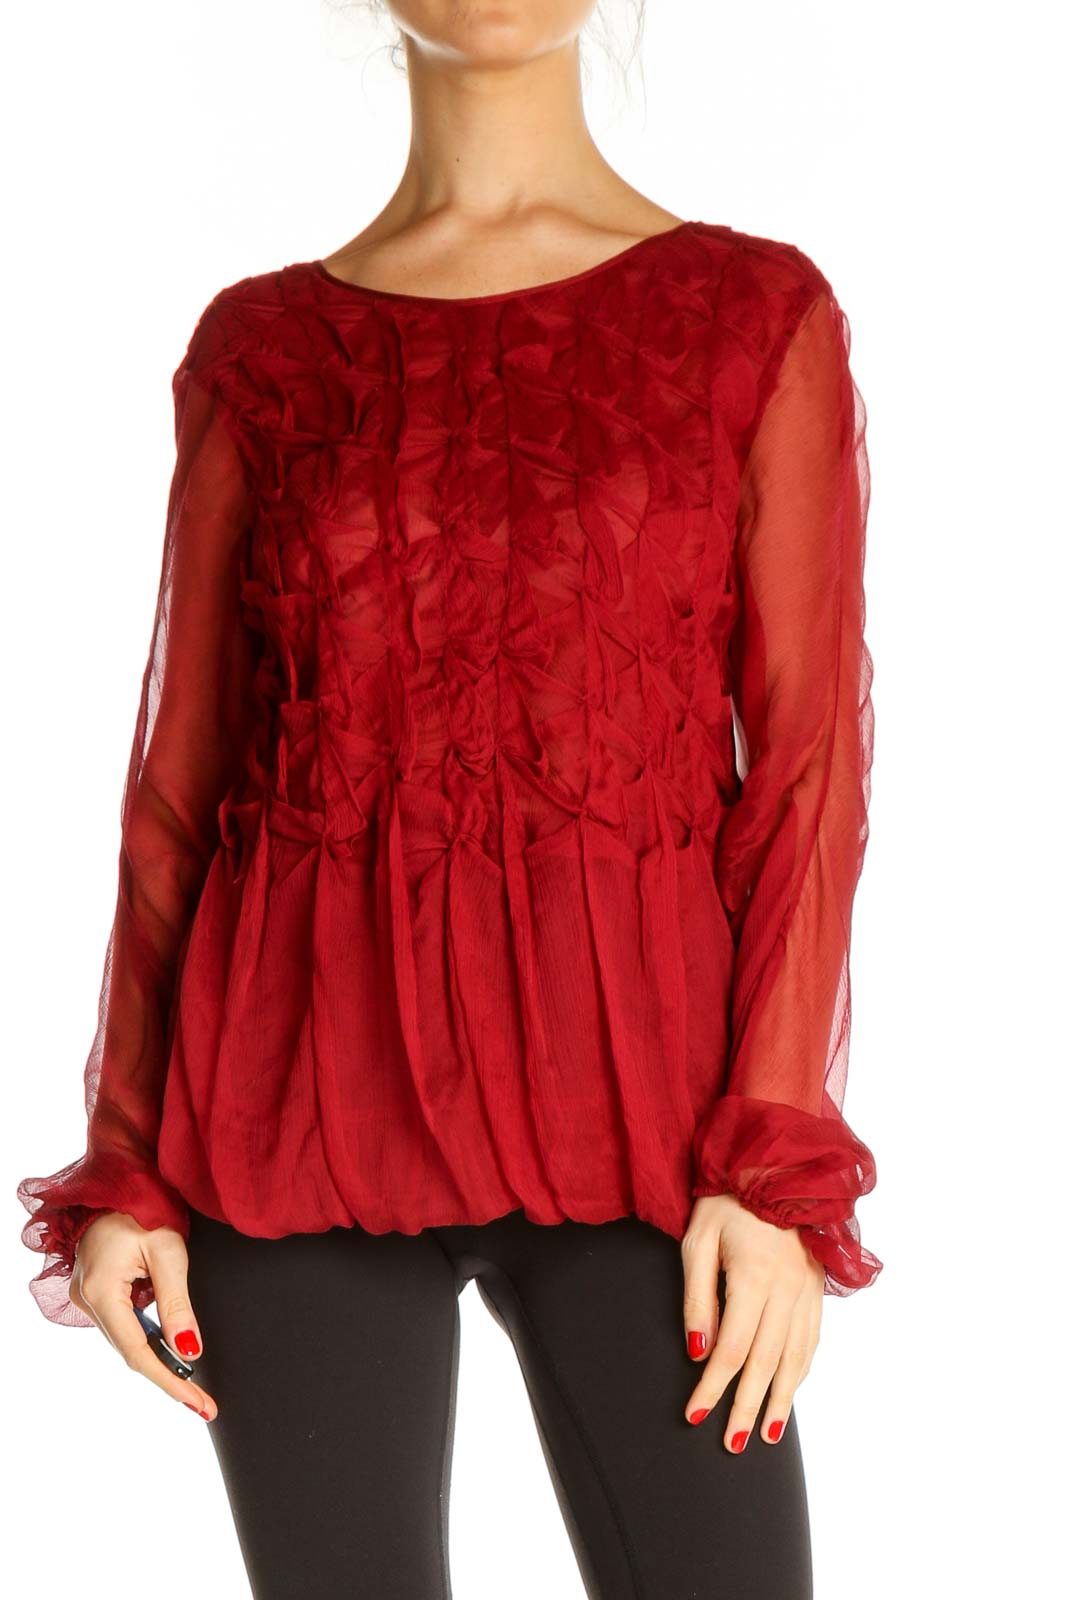 Red Textured Retro Blouse Front